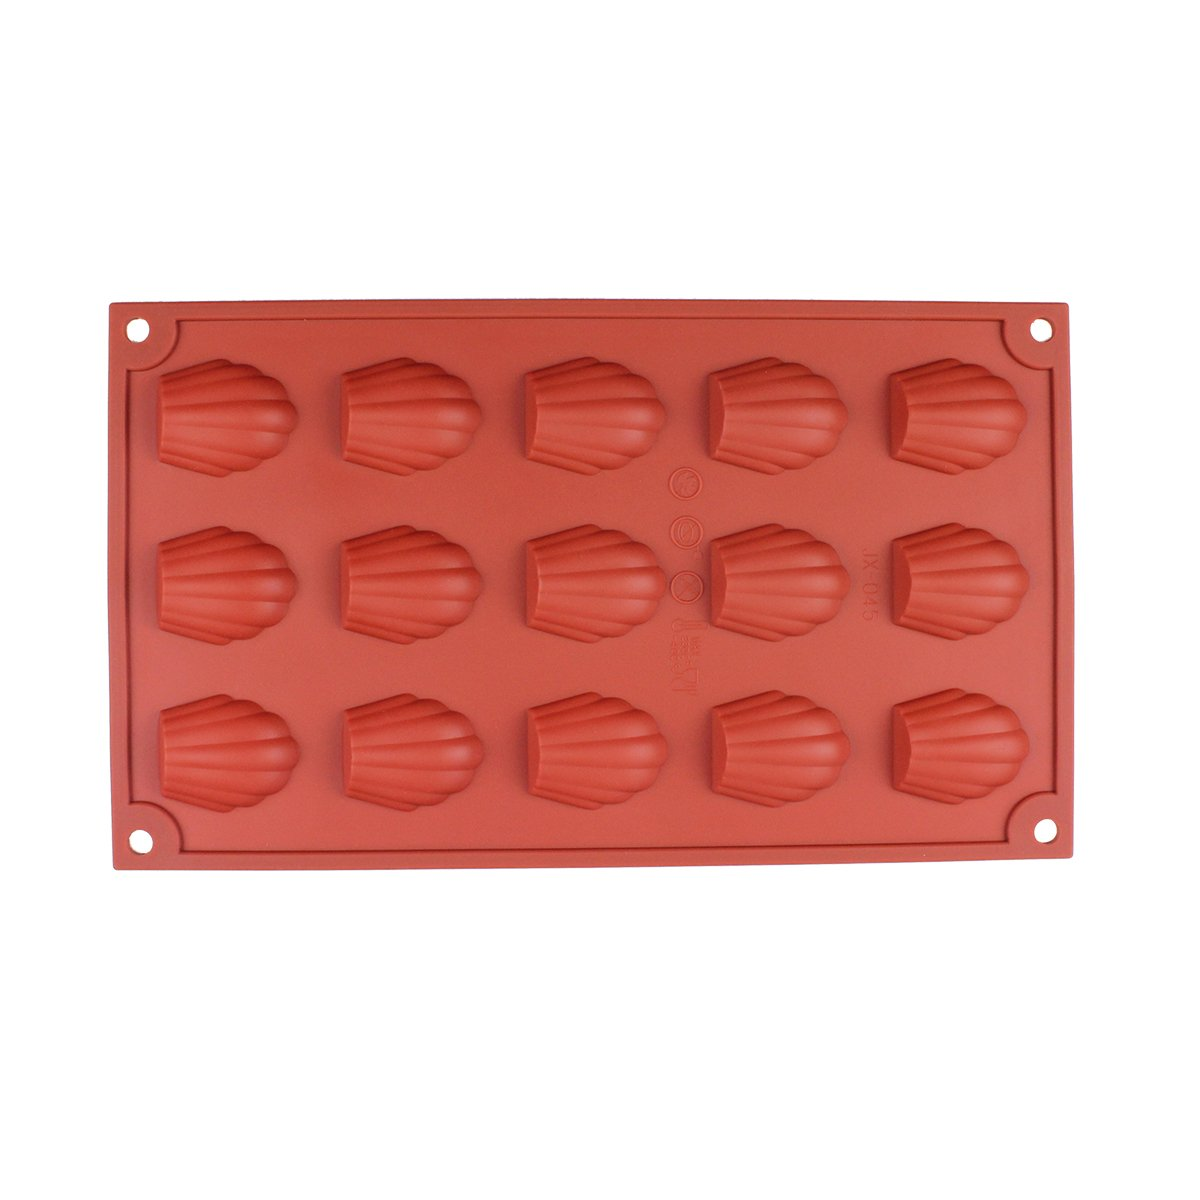 Baker Boutique Silicone Baking Mold 15-Cavity Homemade Seashell Cookies Chocolate Candy Cake Molds Non Stick